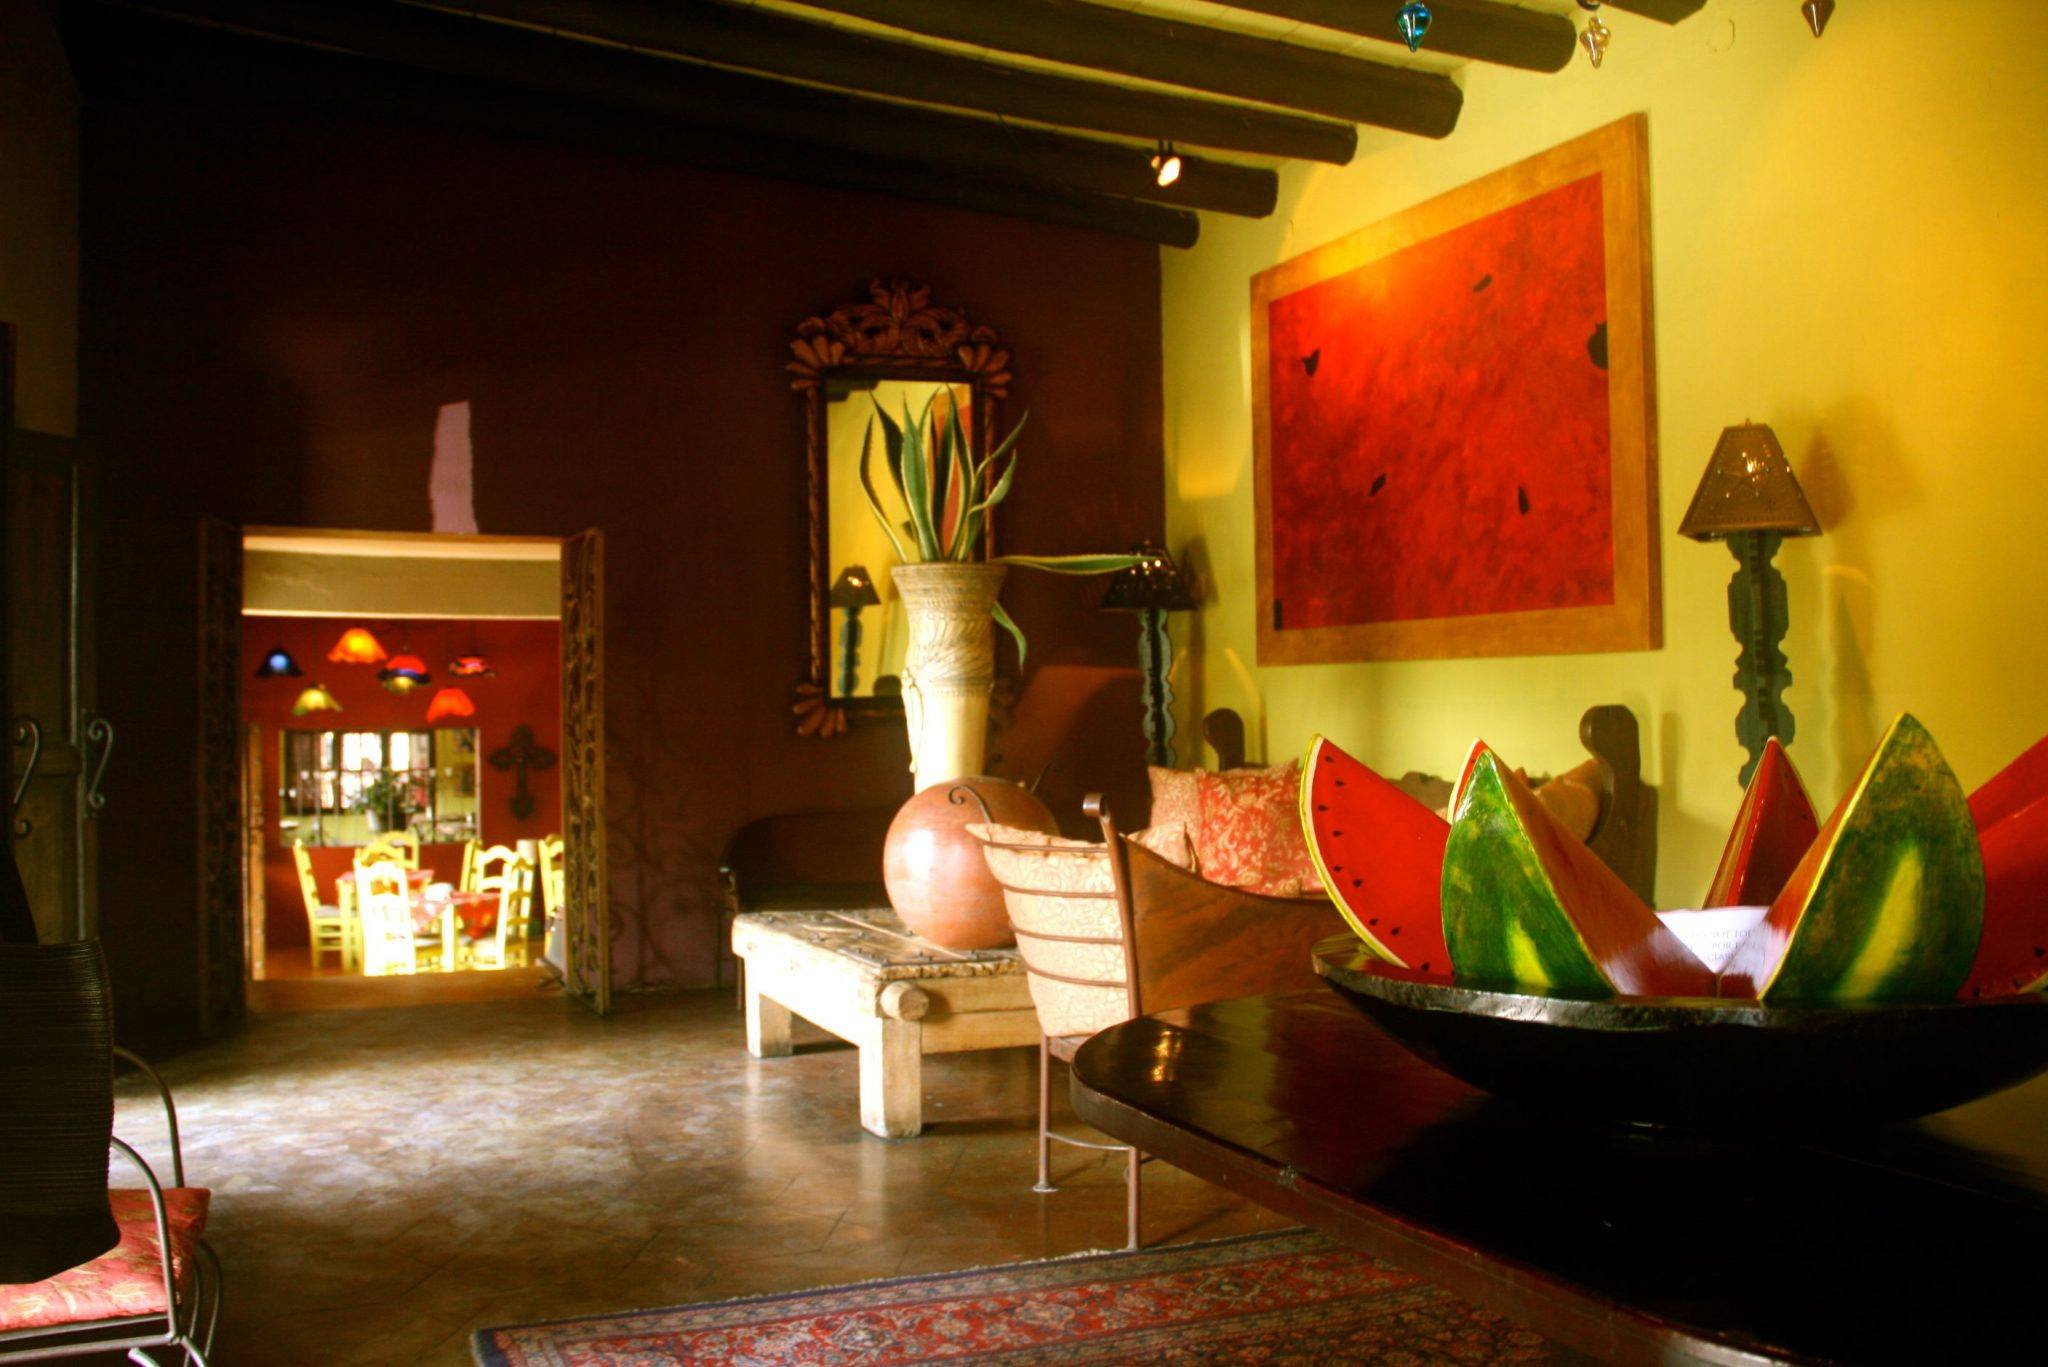 Mexican Interior Design Inspiration: Photos from Hotel California ...